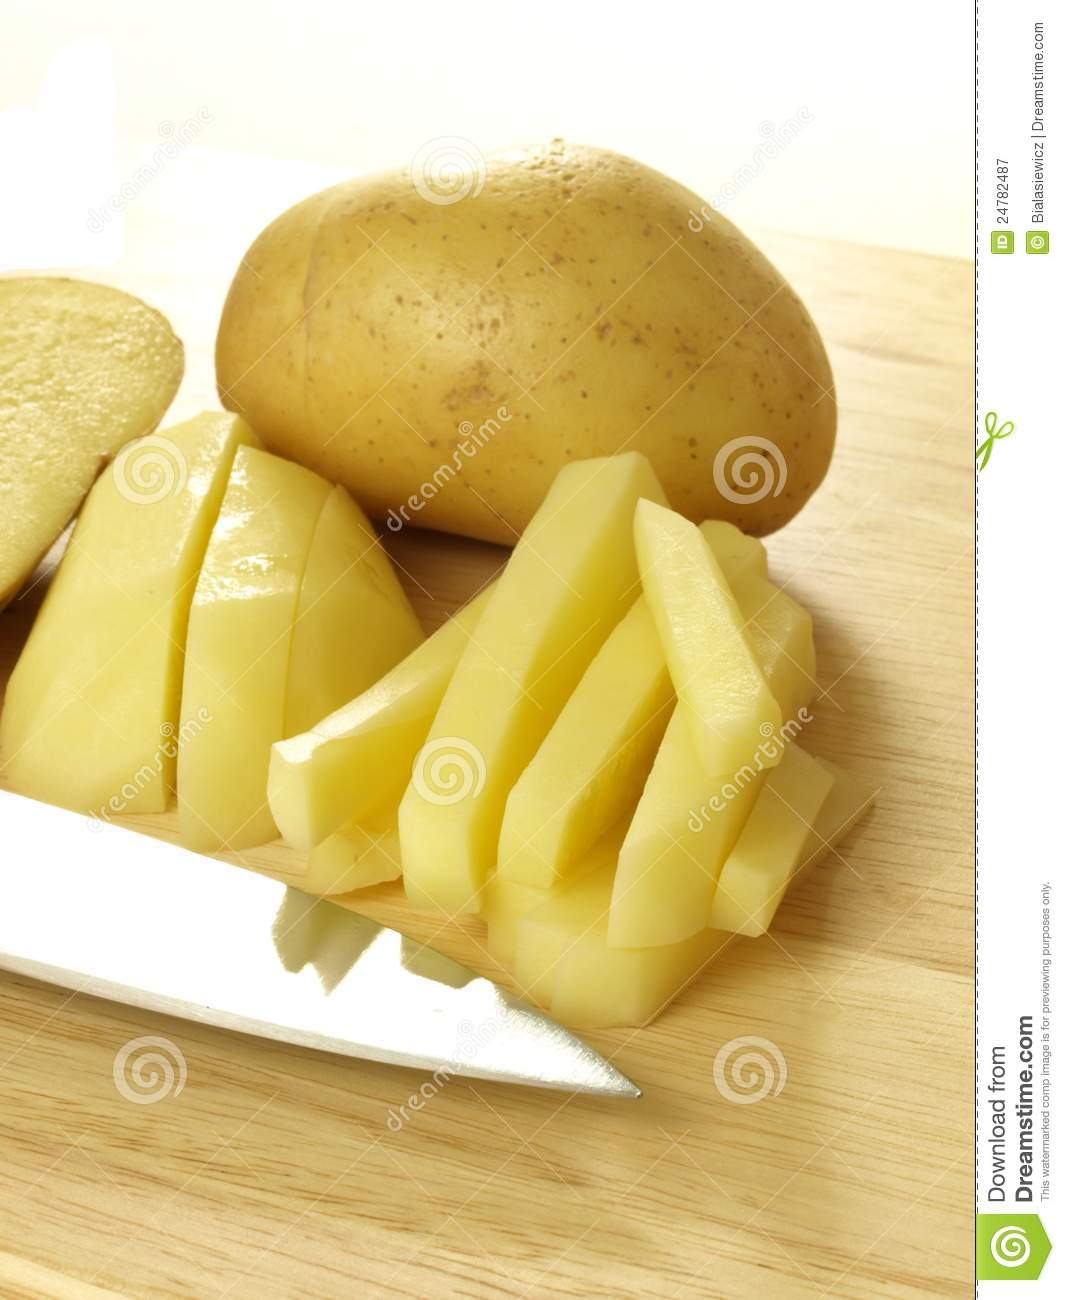 Homemade French Fries Royalty Free Stock Photography - Image: 24782487